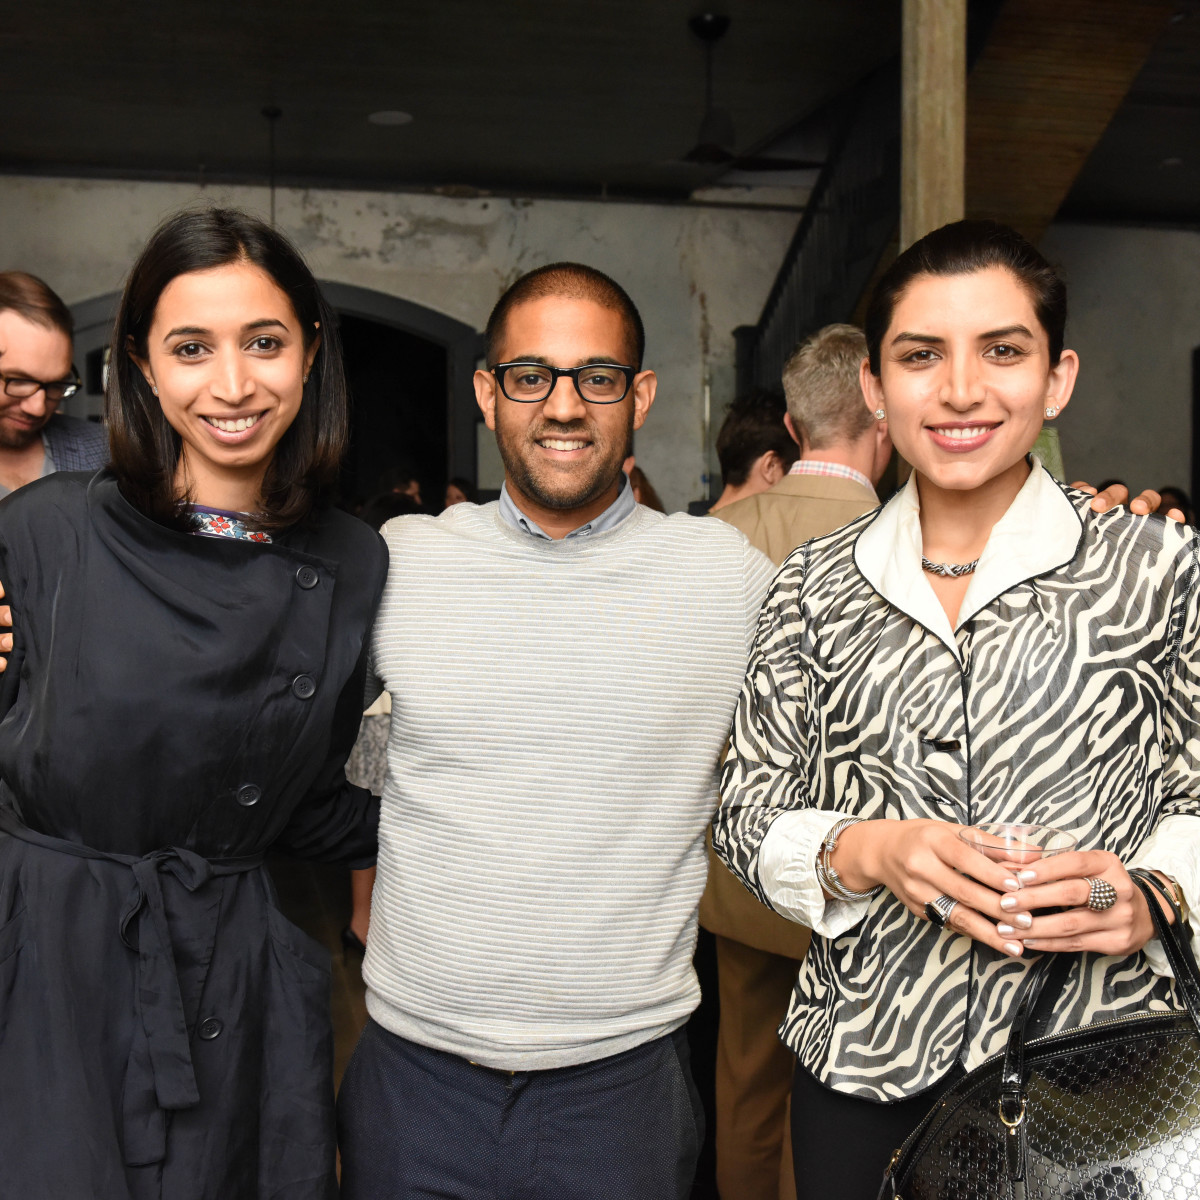 News, Pier & Beam party, Dec. 2015, Asha Gandhi, Vikas Sodhani, Puja Verma